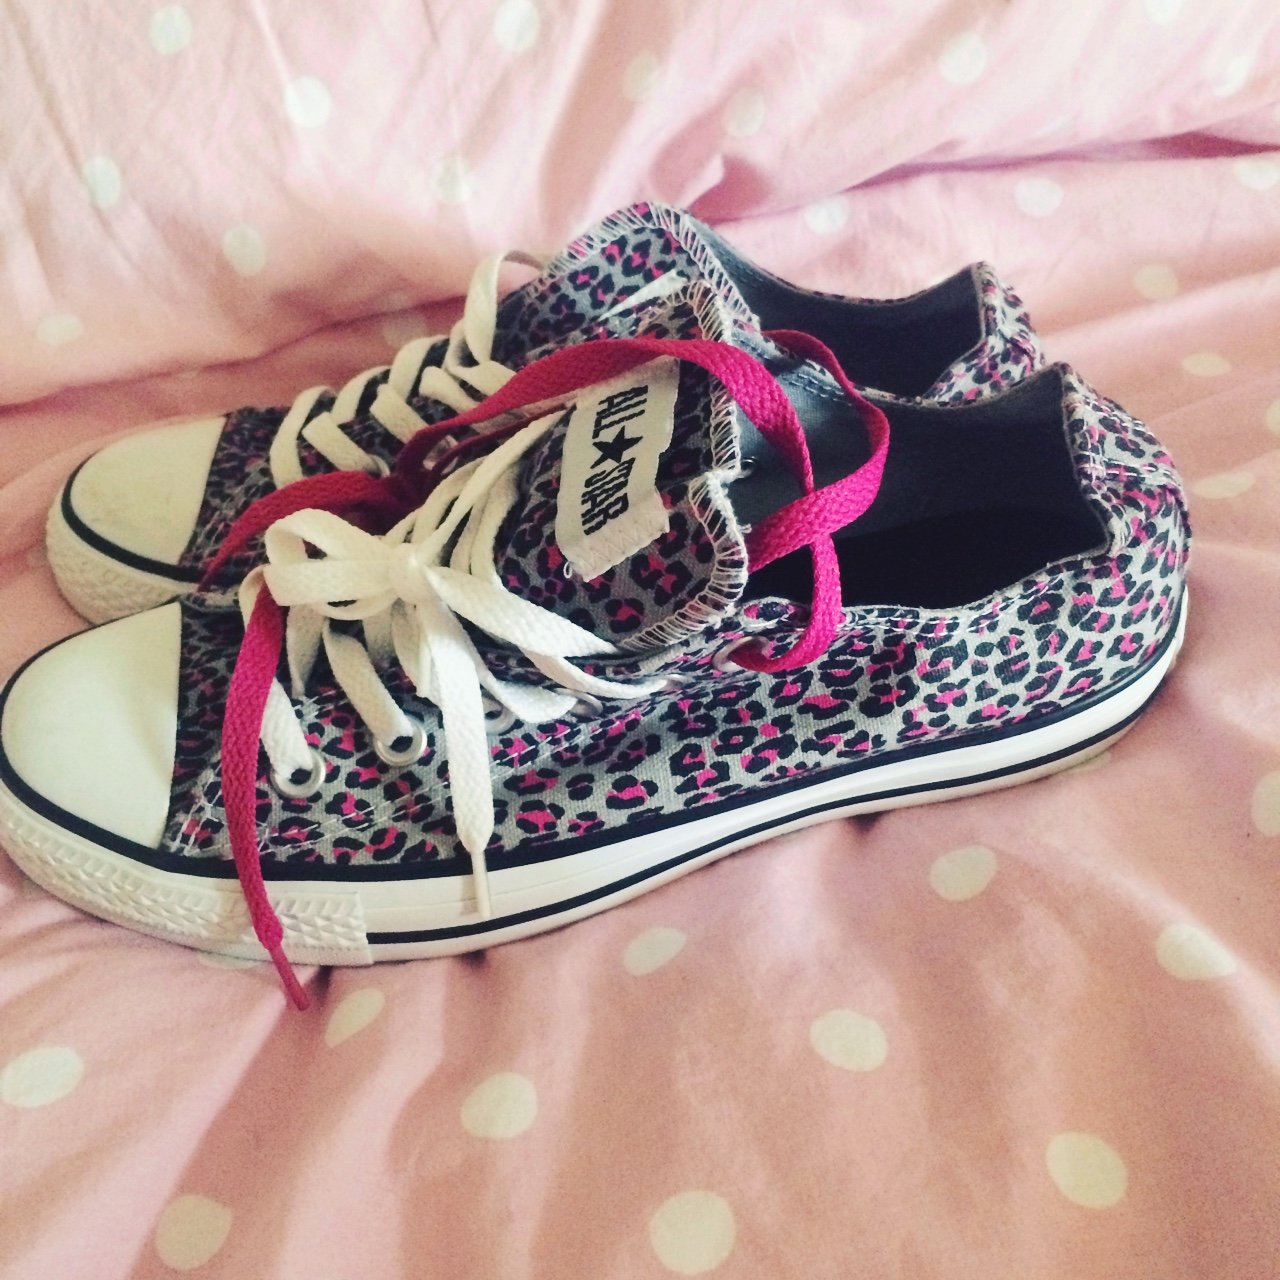 25c149a2bd4 Leopard print converse never worn. come with pink laces size - Depop